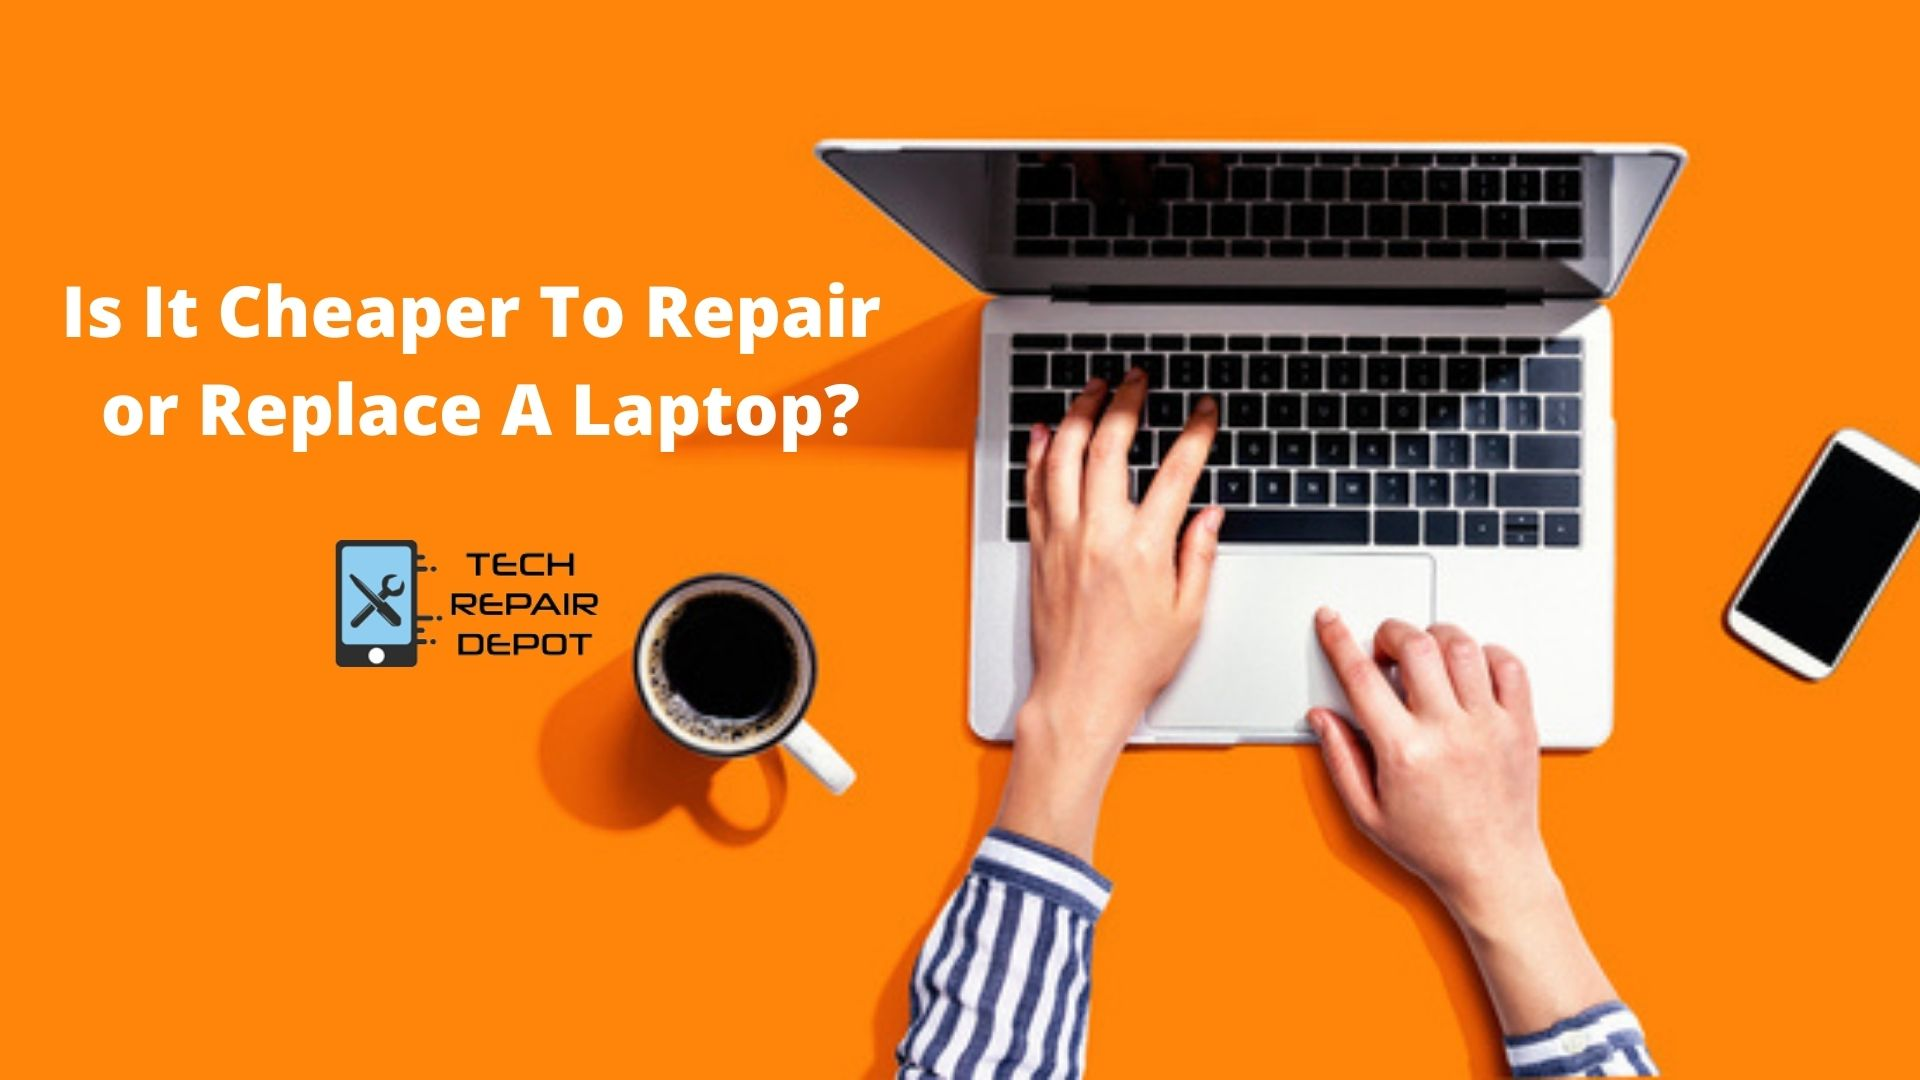 Is It Cheaper To Repair or Replace A Laptop?